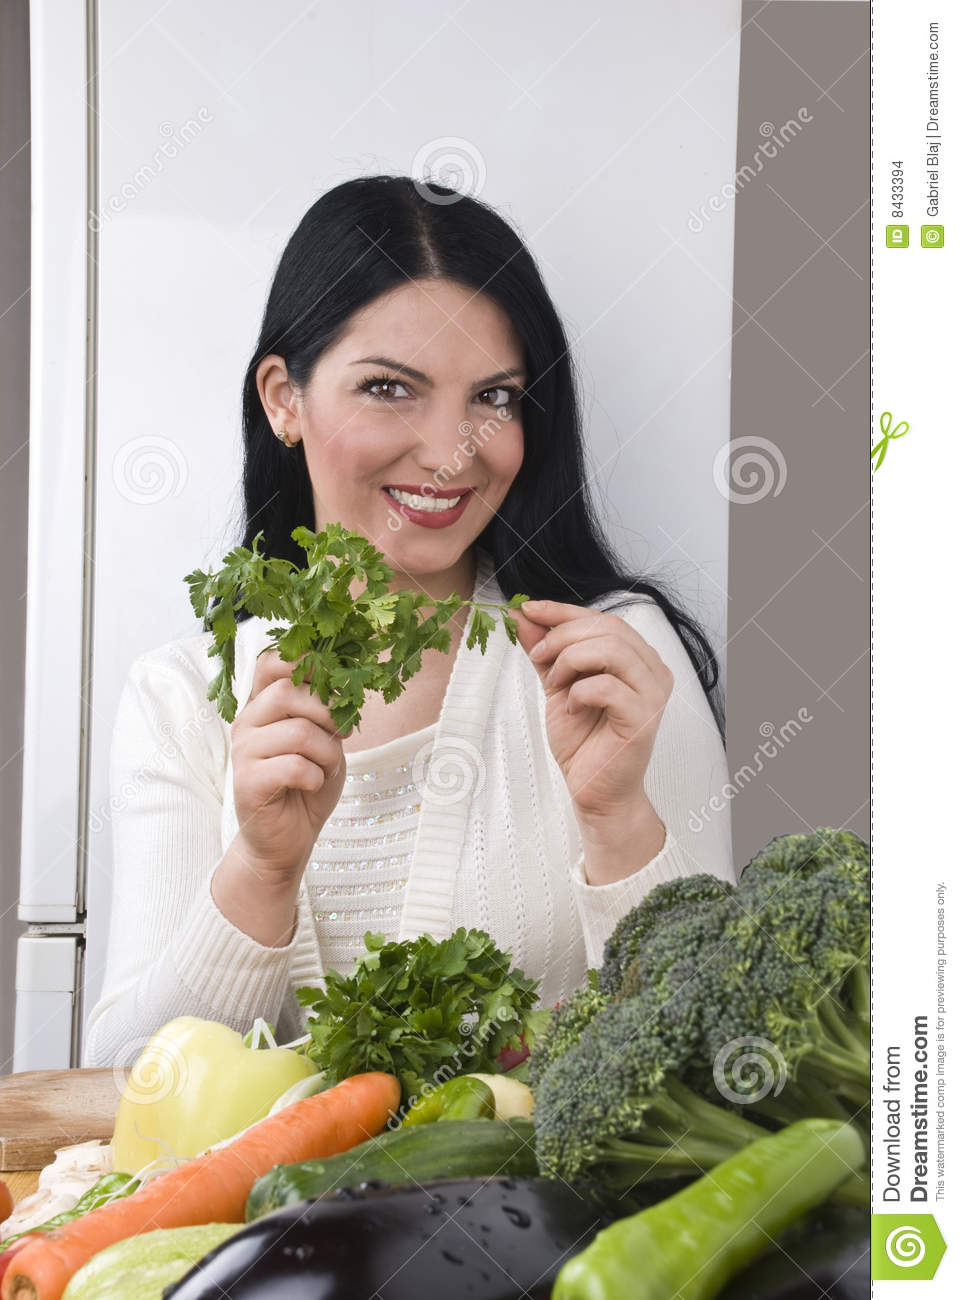 Happy woman with fresh parsley and vegetables